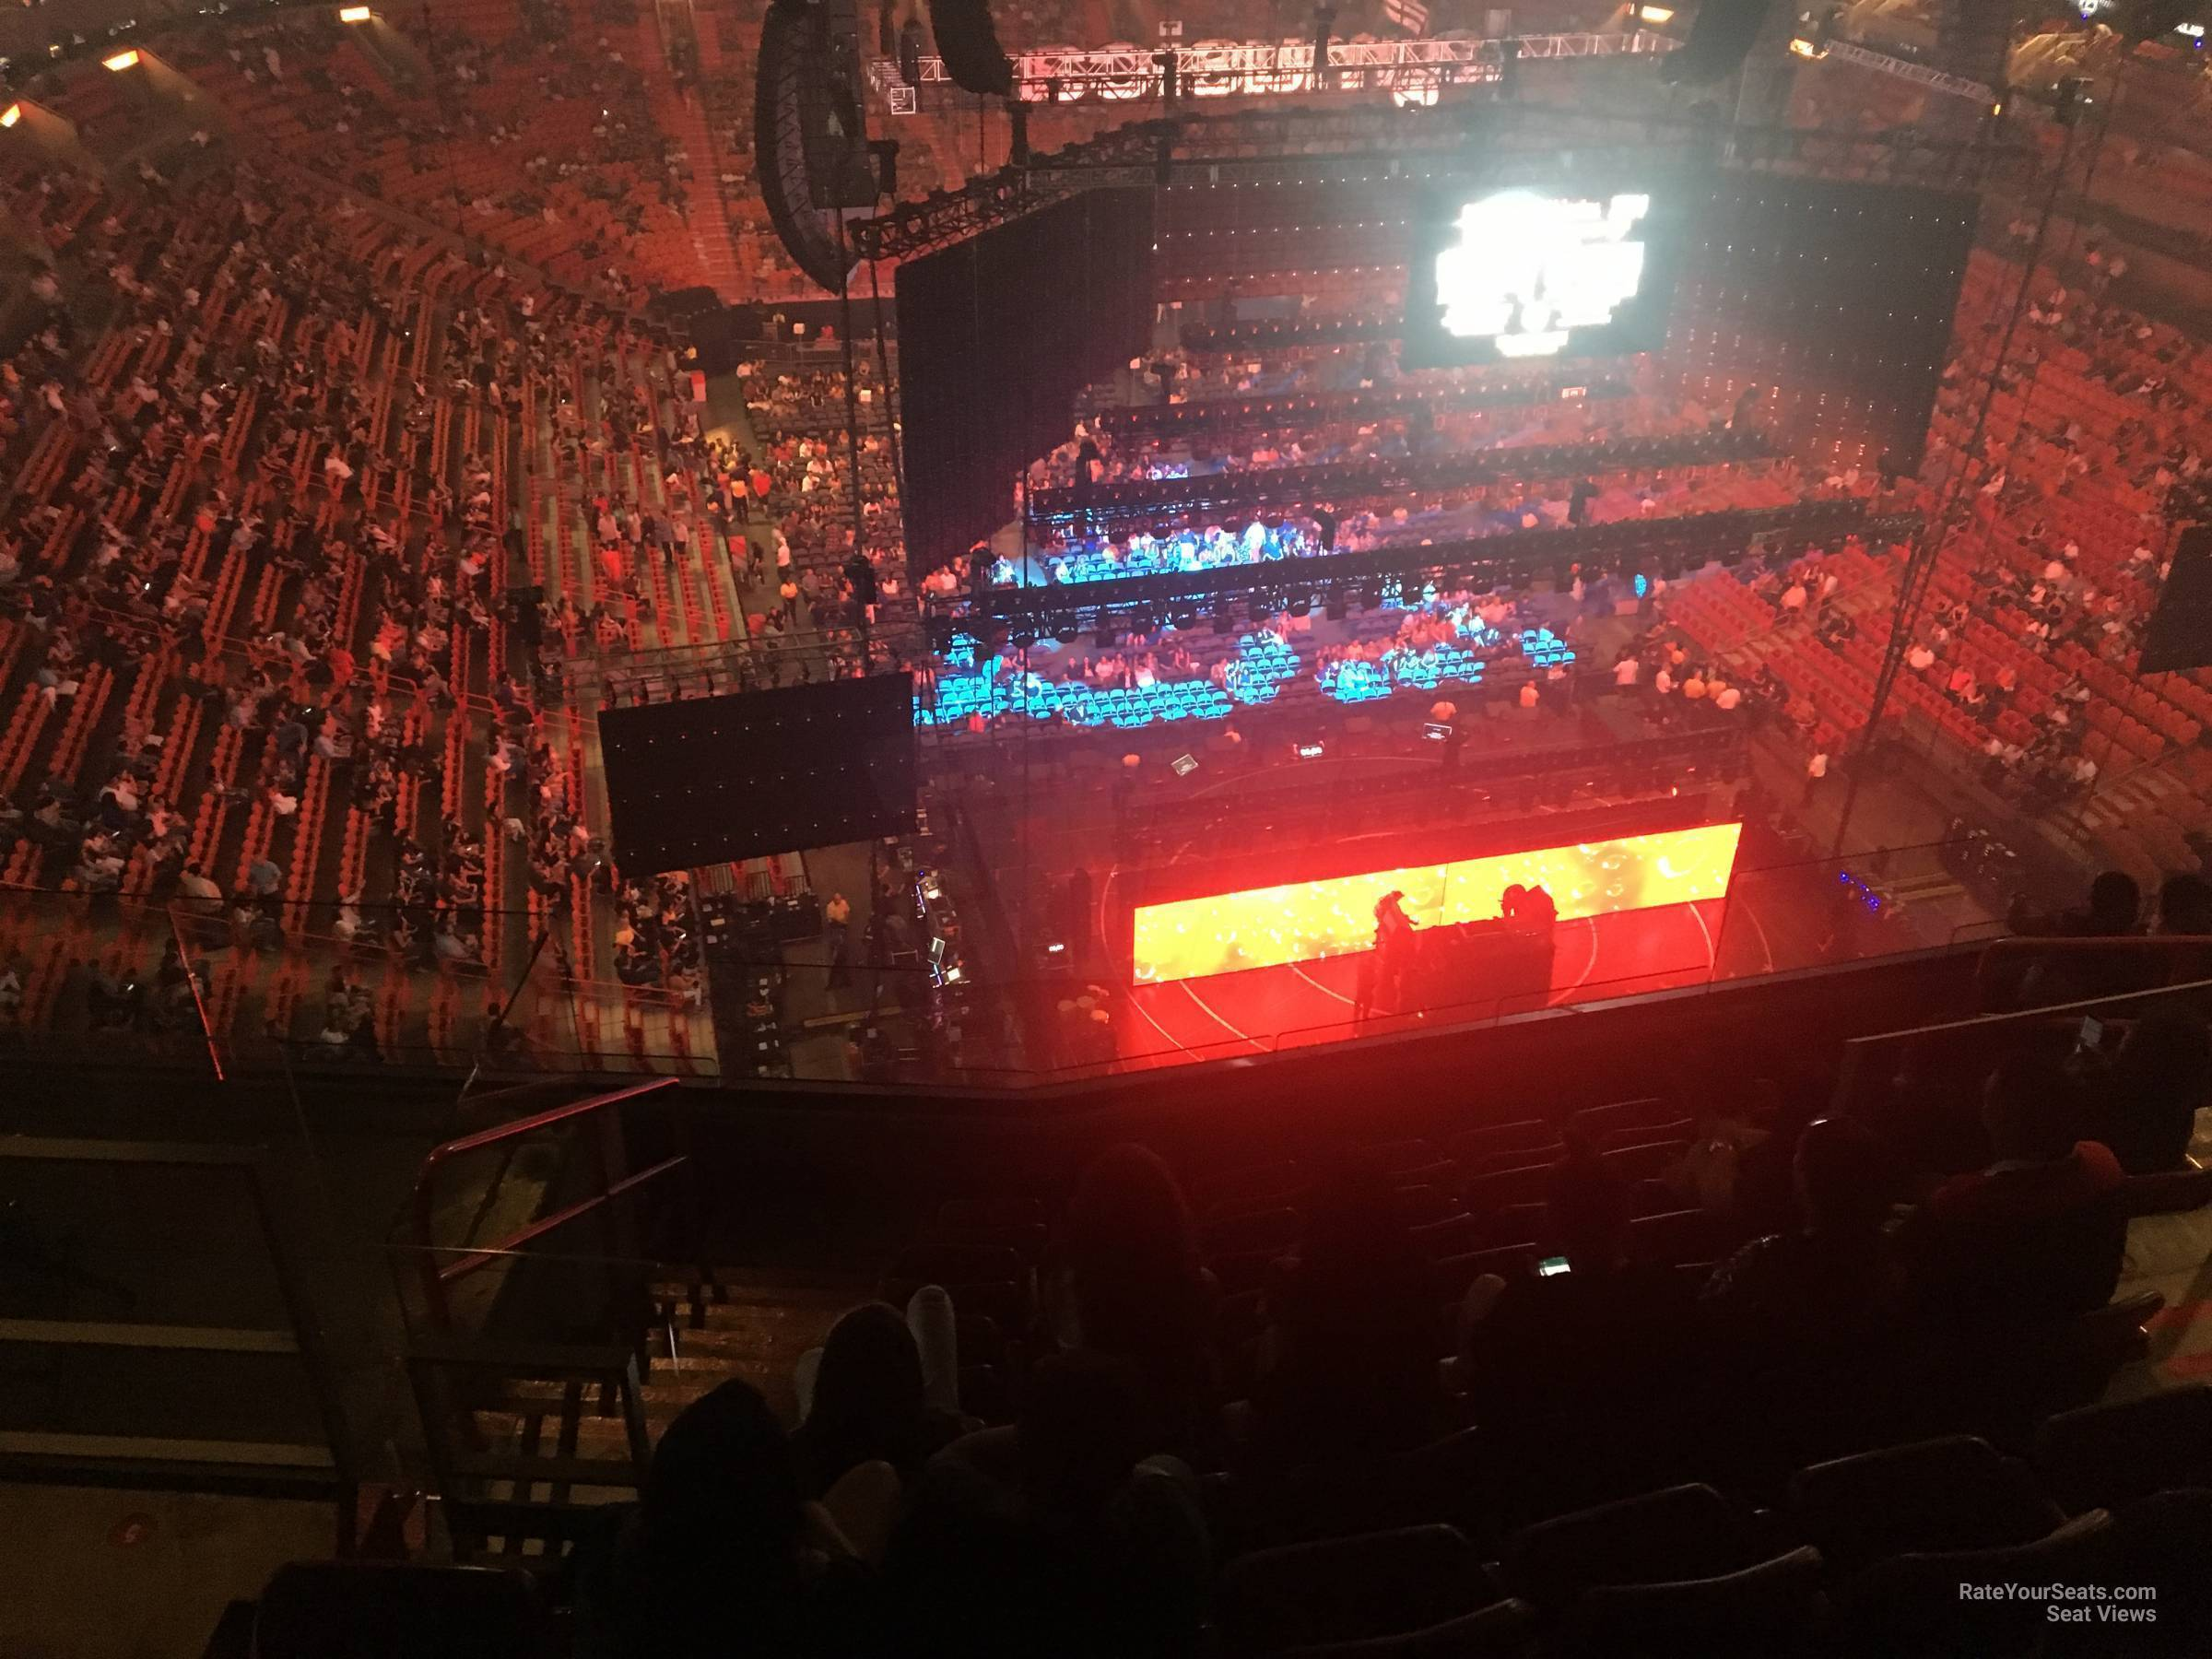 Concert Seat View for AmericanAirlines Arena Section 407, Row 10